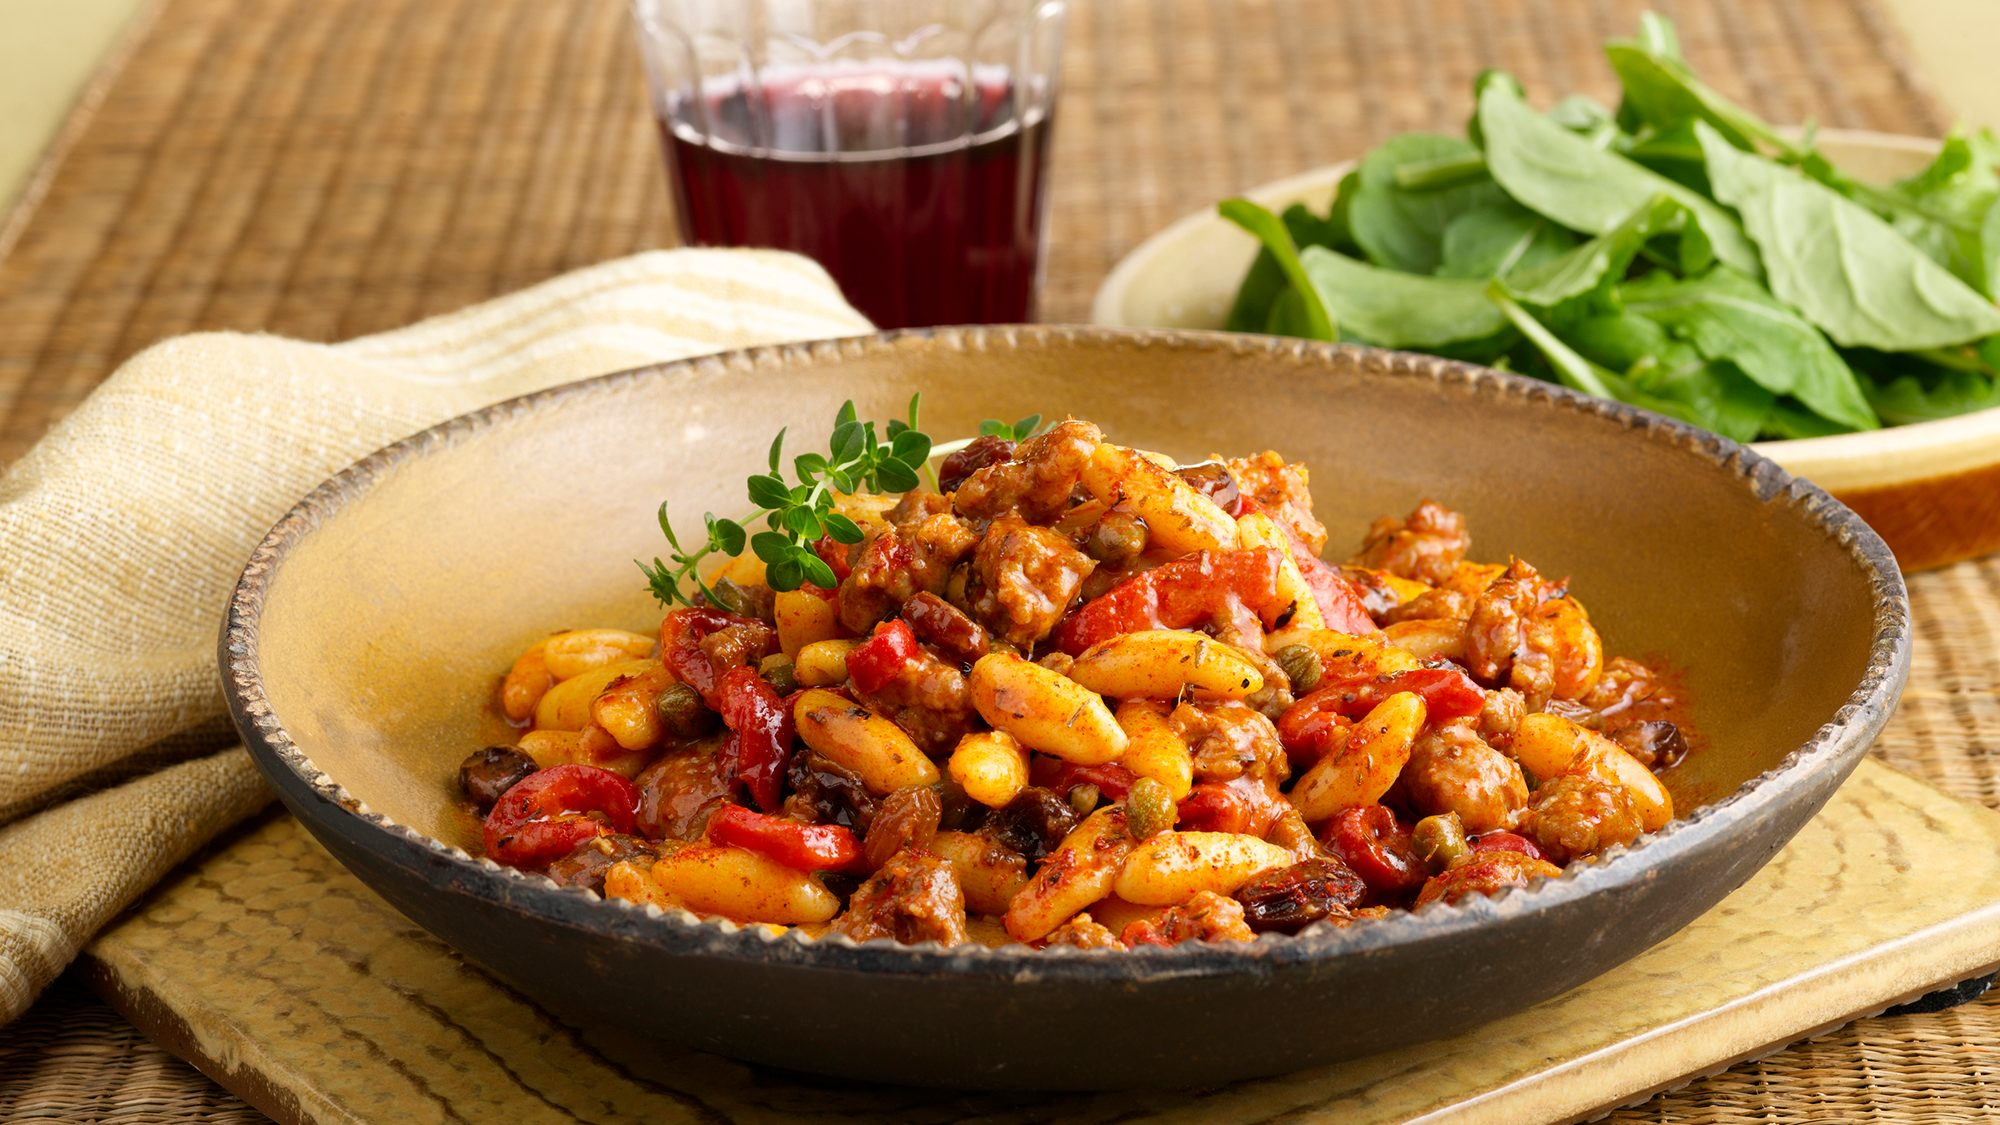 cavatelli-pasta-with-sweet-sausage-roasted-peppers-and-raisins.jpg